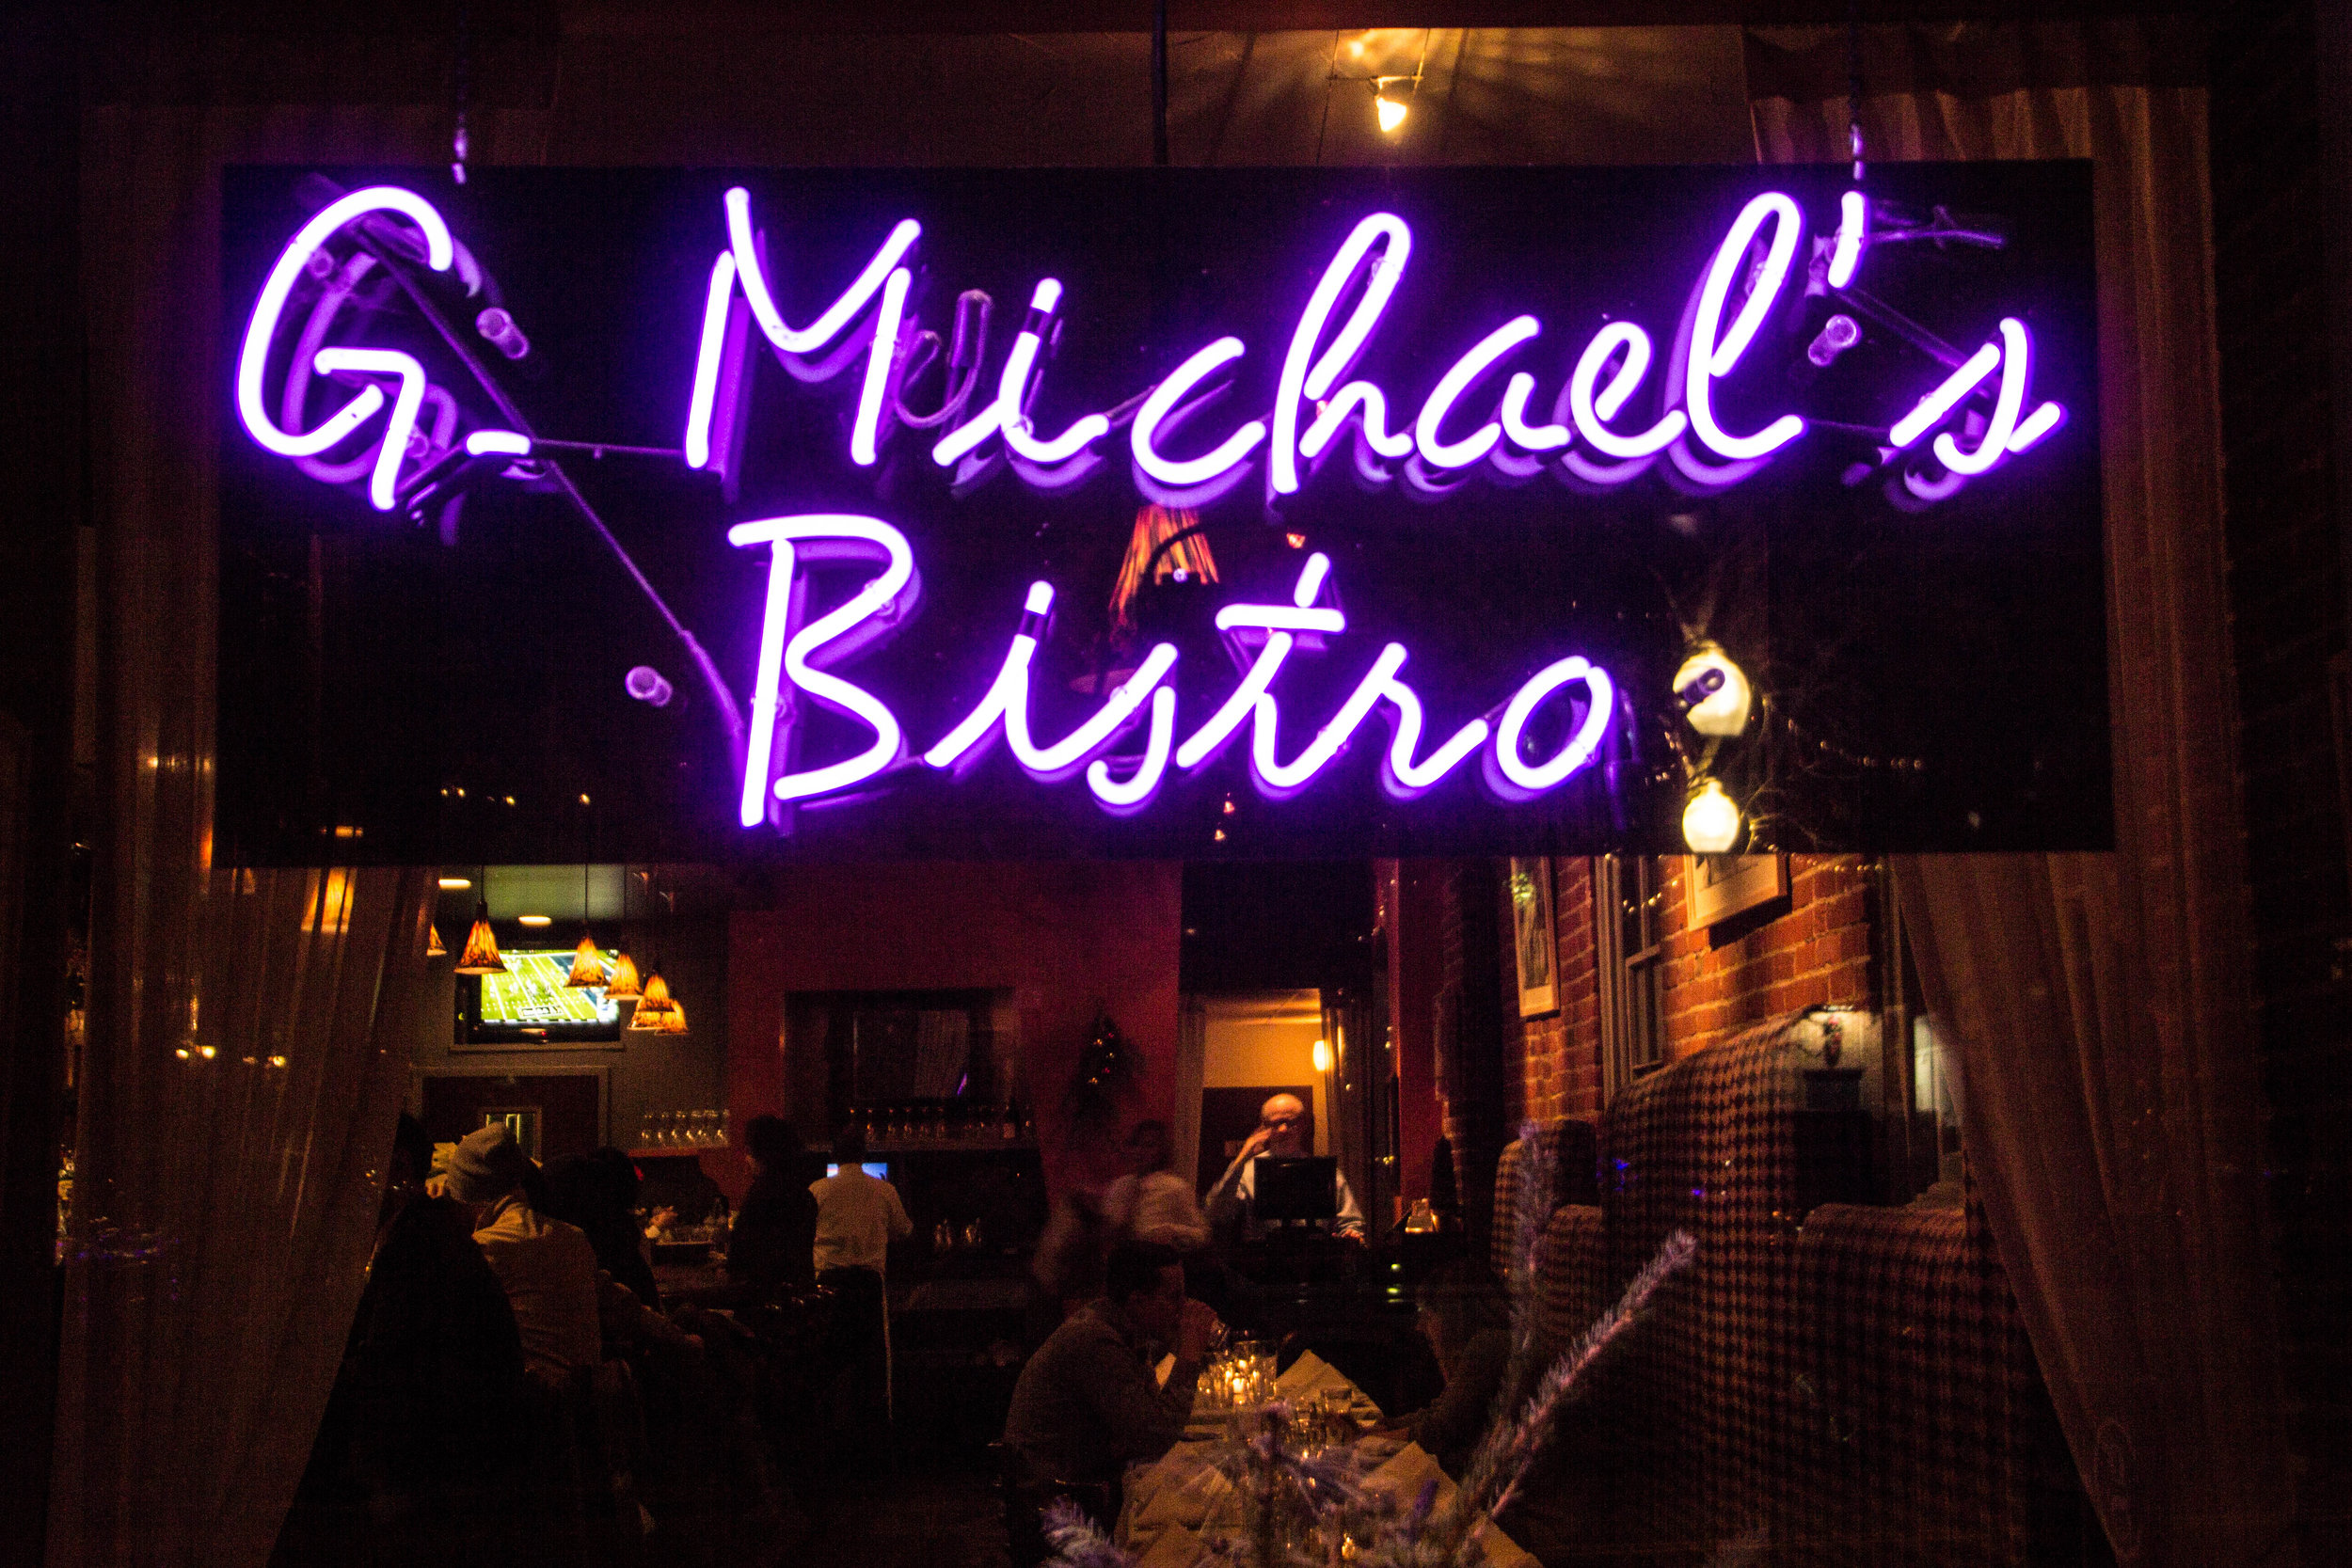 g-michaels-bistro-columbus-restaurants-2.jpg